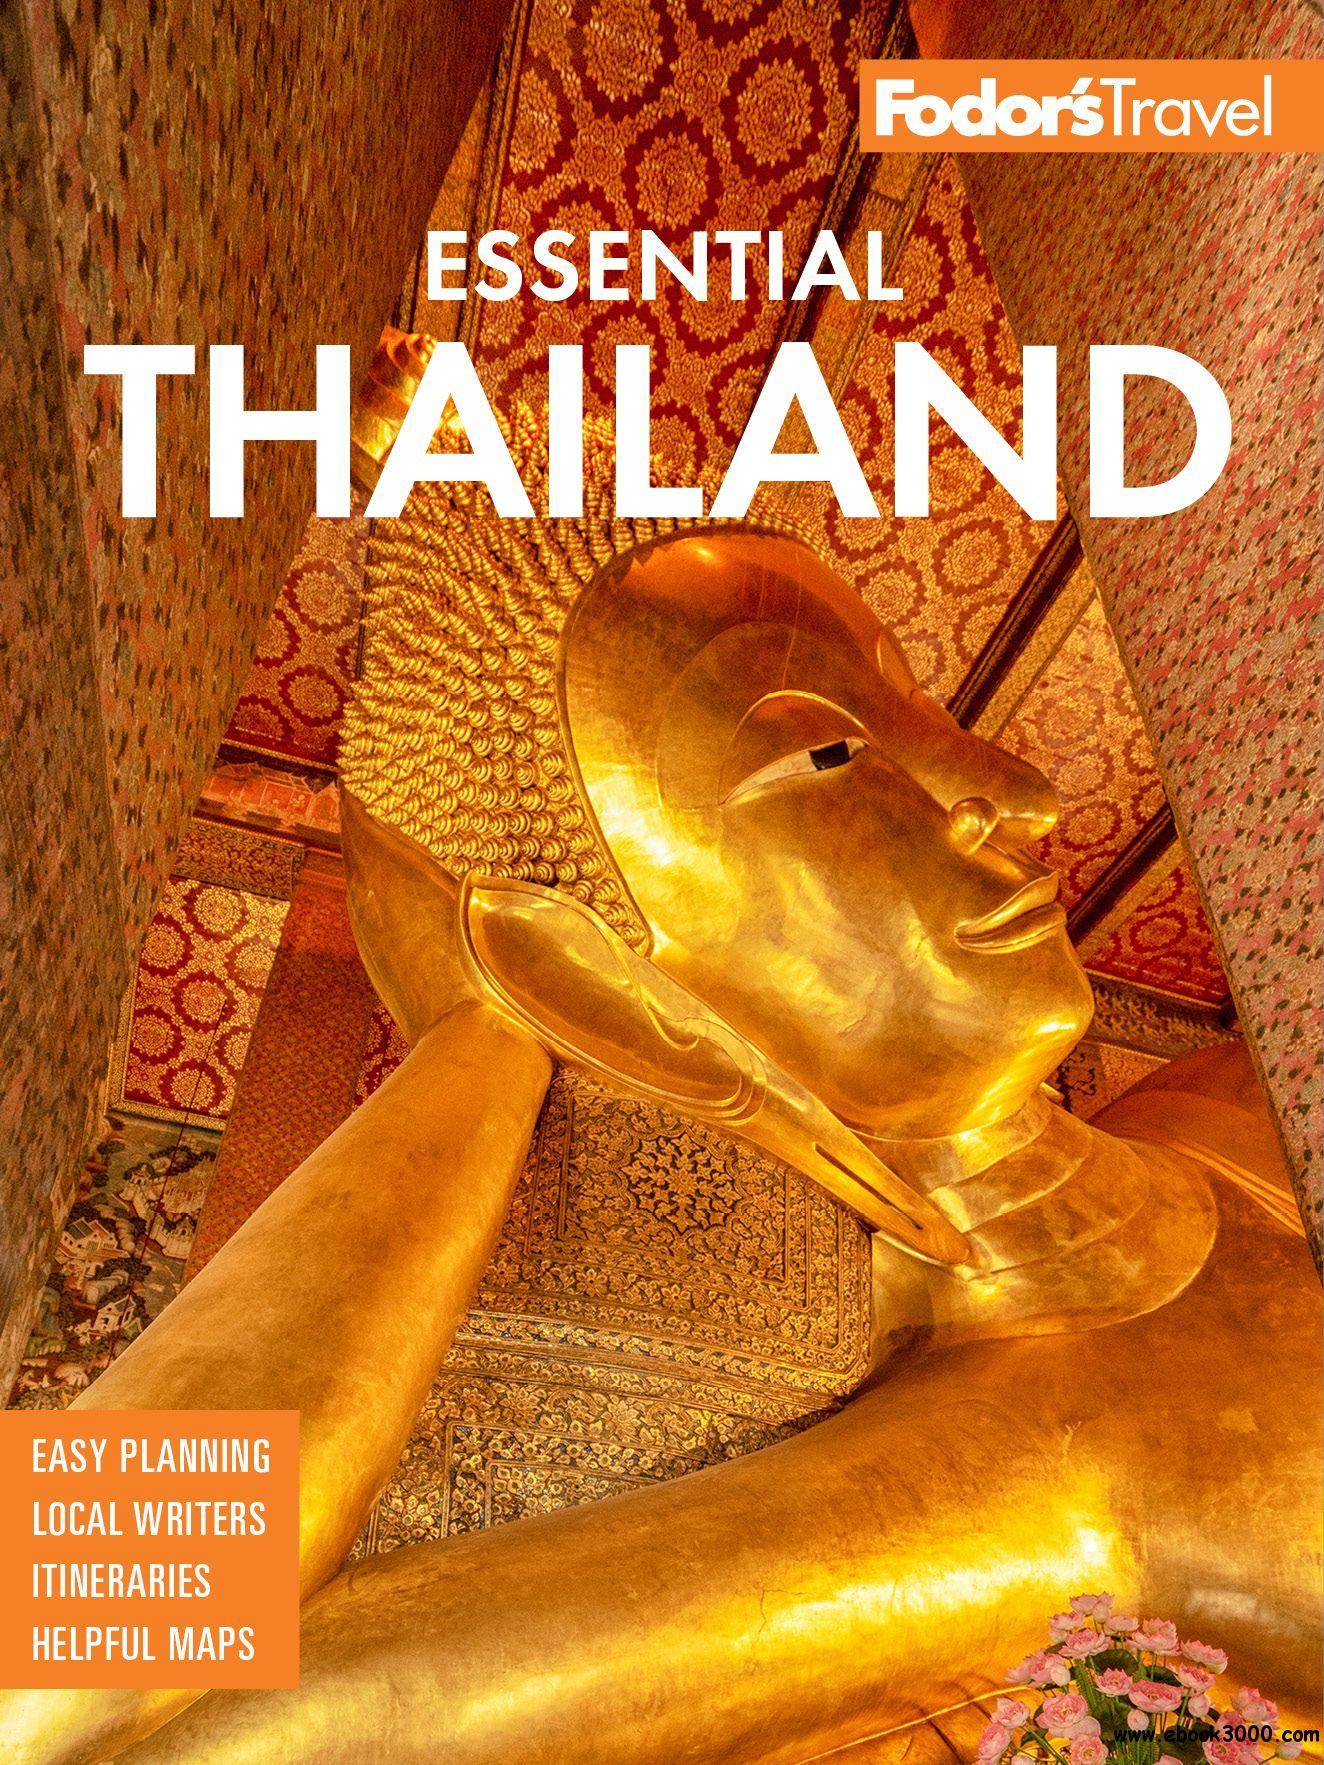 Fodor's Essential Thailand: with Myanmar (Burma), Cambodia & Laos (Full-color Travel Guide)